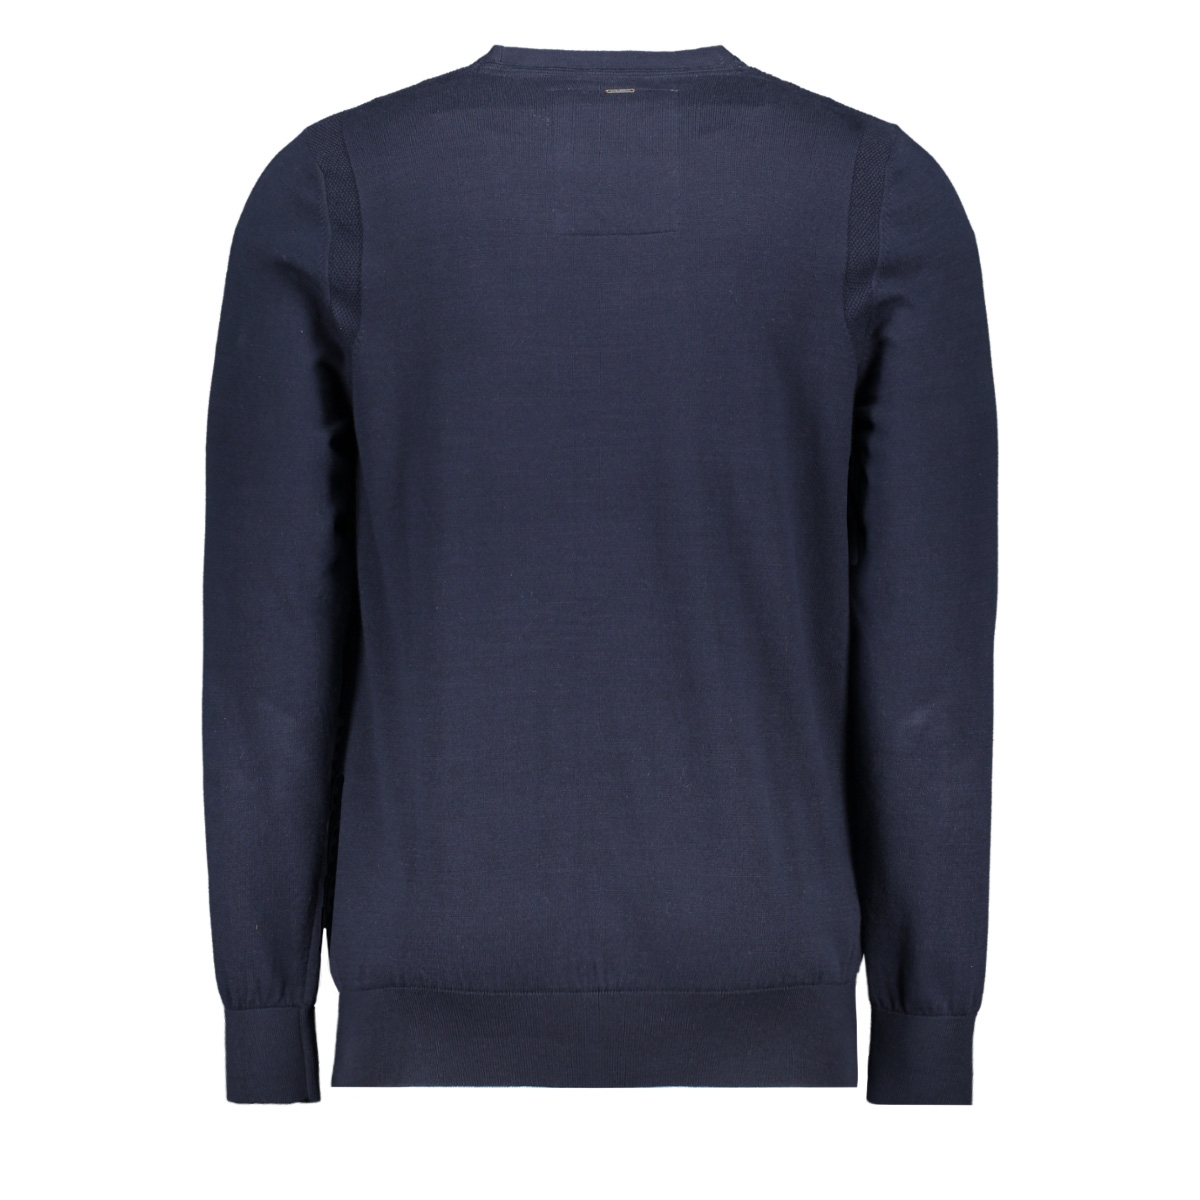 crewneck cotton pullover pkw201300 pme legend trui 5287